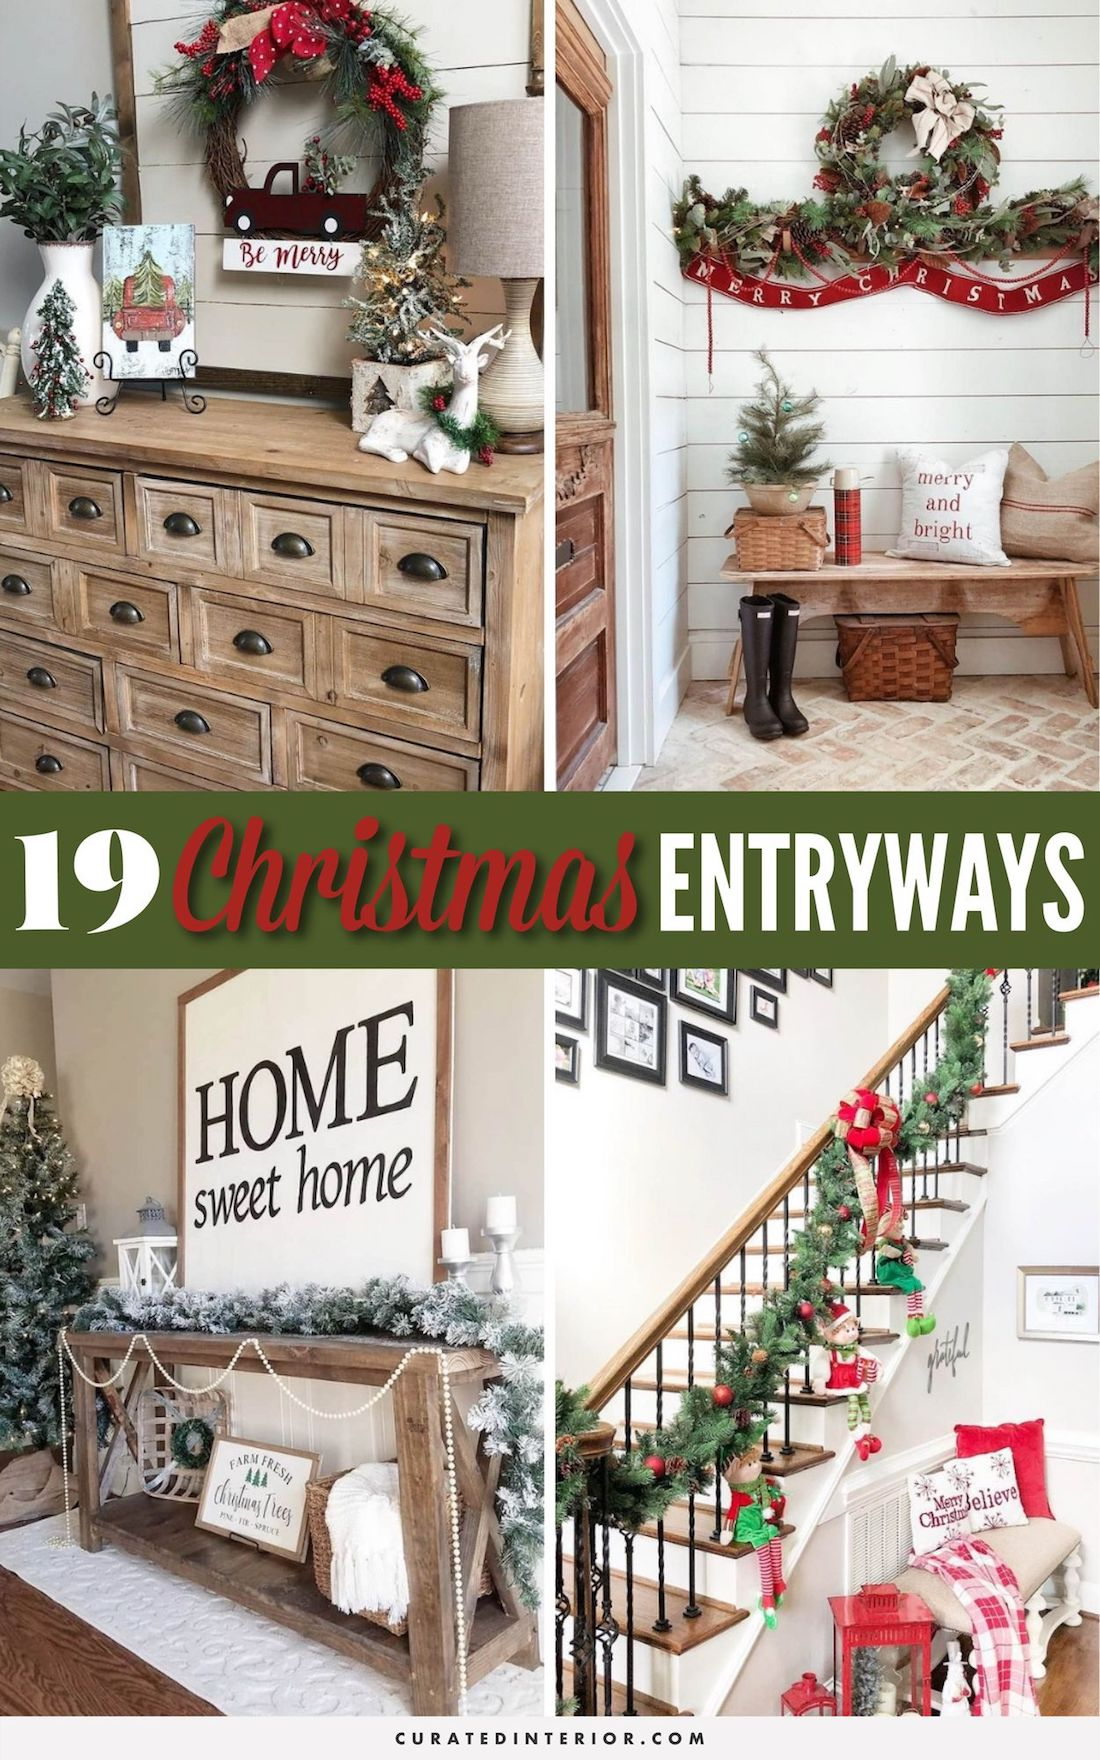 19 Christmas Entryway Decor Ideas #ChristmasDecor #Entryways #ChristmasHome